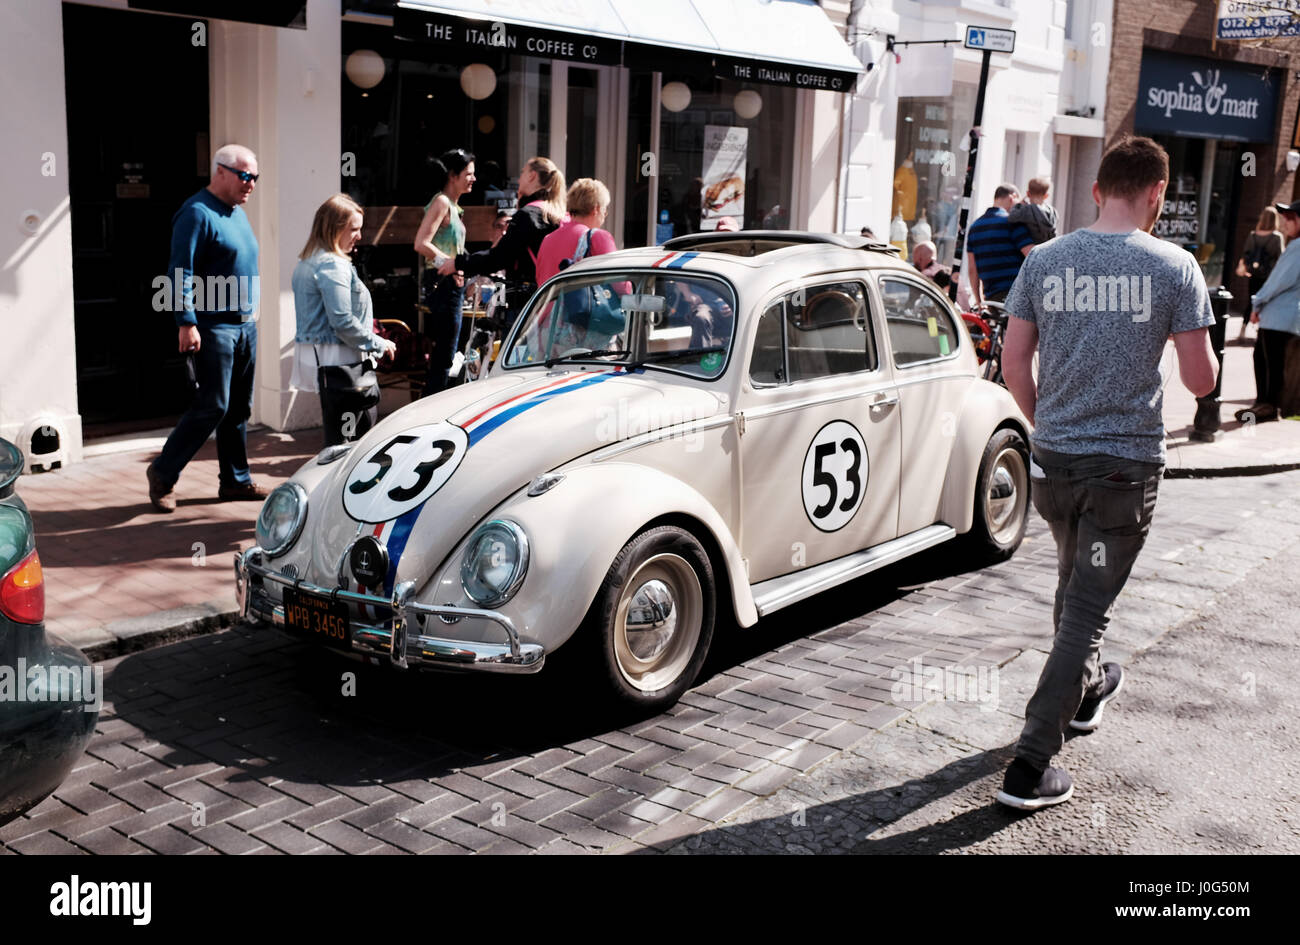 Old Volkswagen Beetle car painted in same colours as from the famous film Herbie spotted parked in Brighton UK - Stock Image